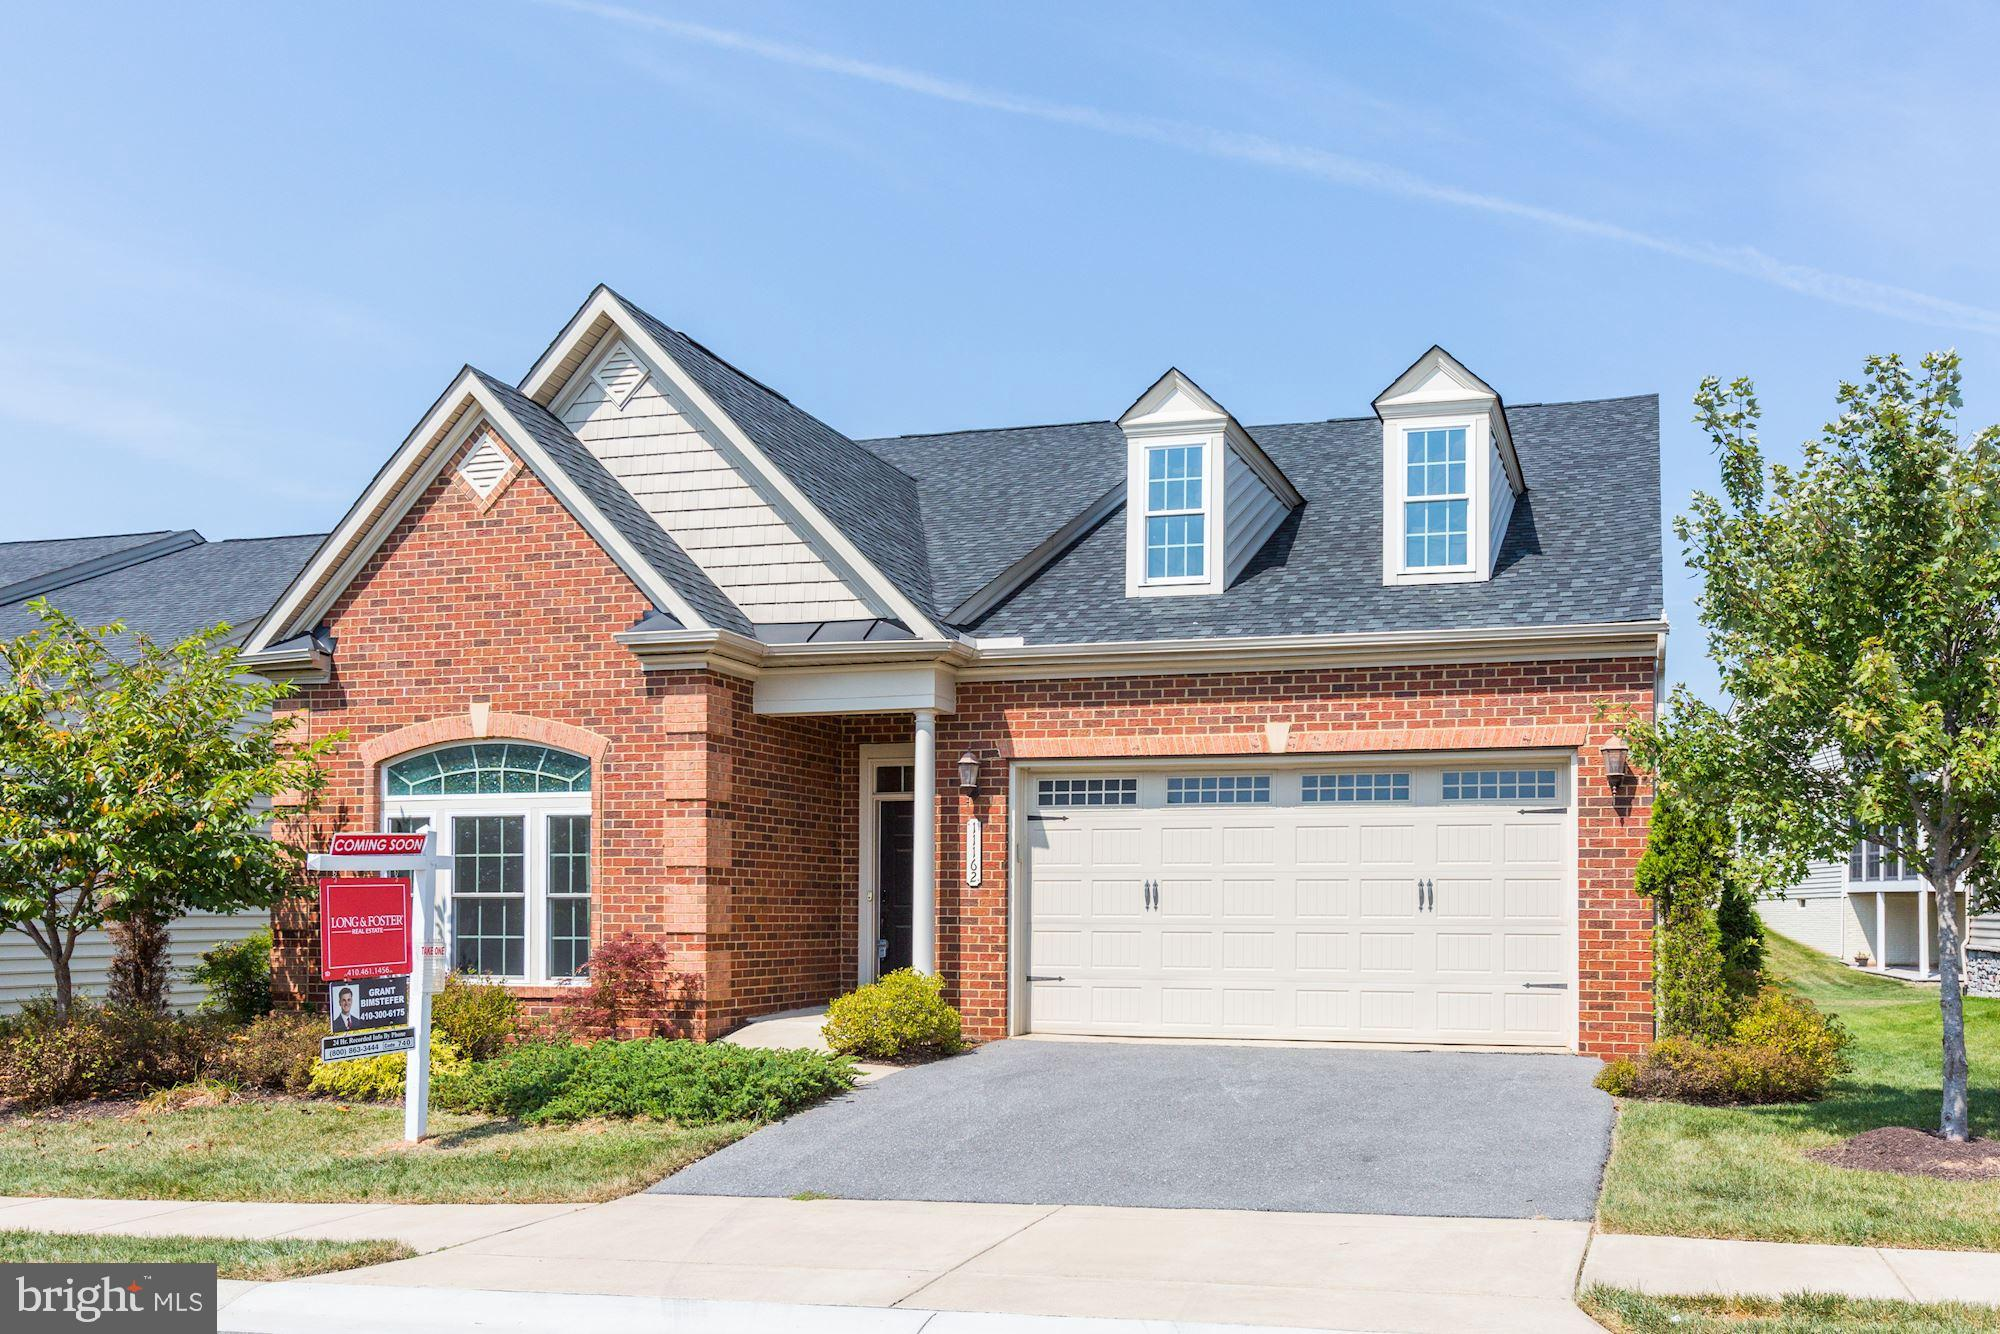 11162 GENTLE ROLLING DRIVE, MARRIOTTSVILLE, MD 21104